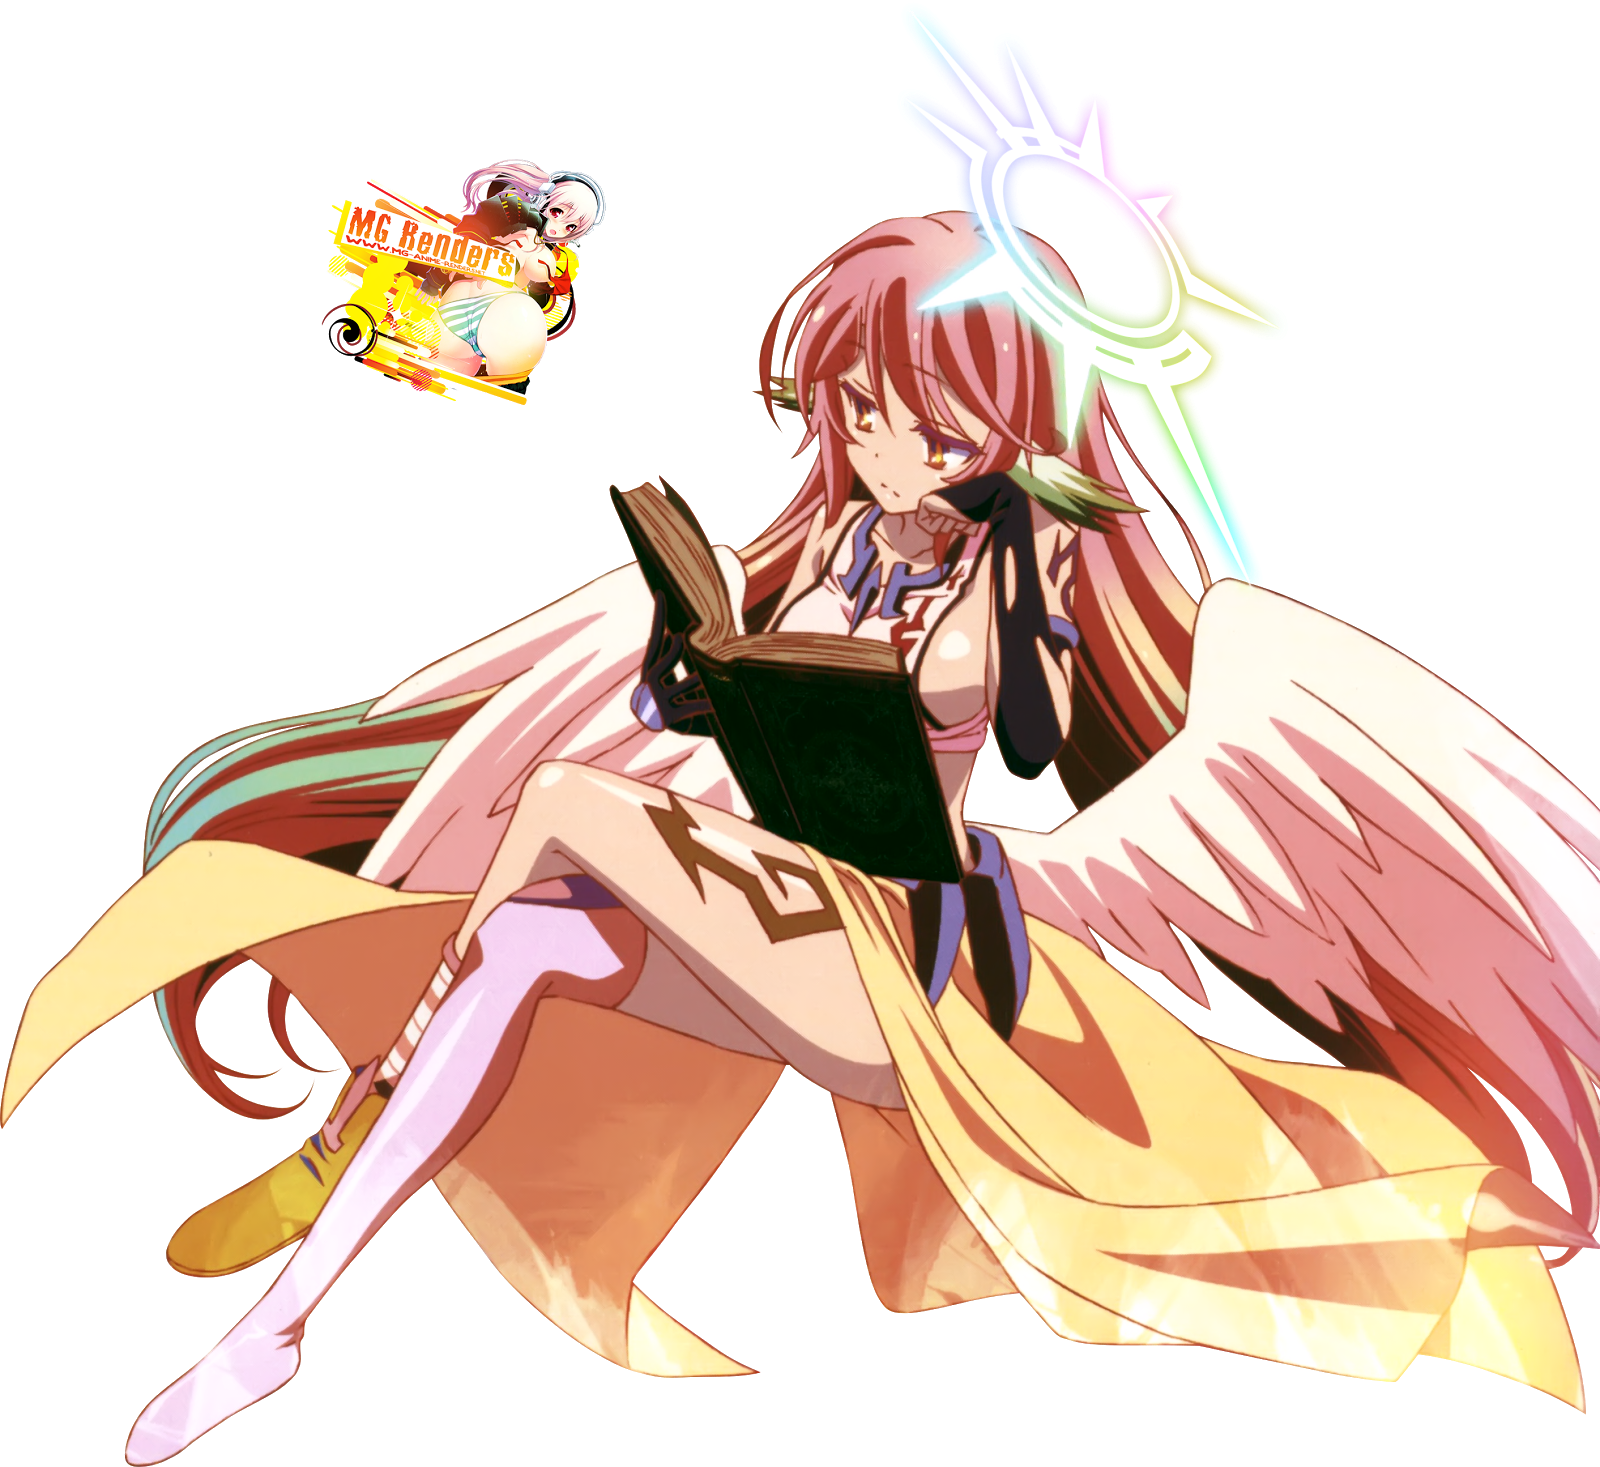 Tags: Anime, Render,  Crossed Legs,  Jibril,  No Game No Life, PNG, Image, Picture